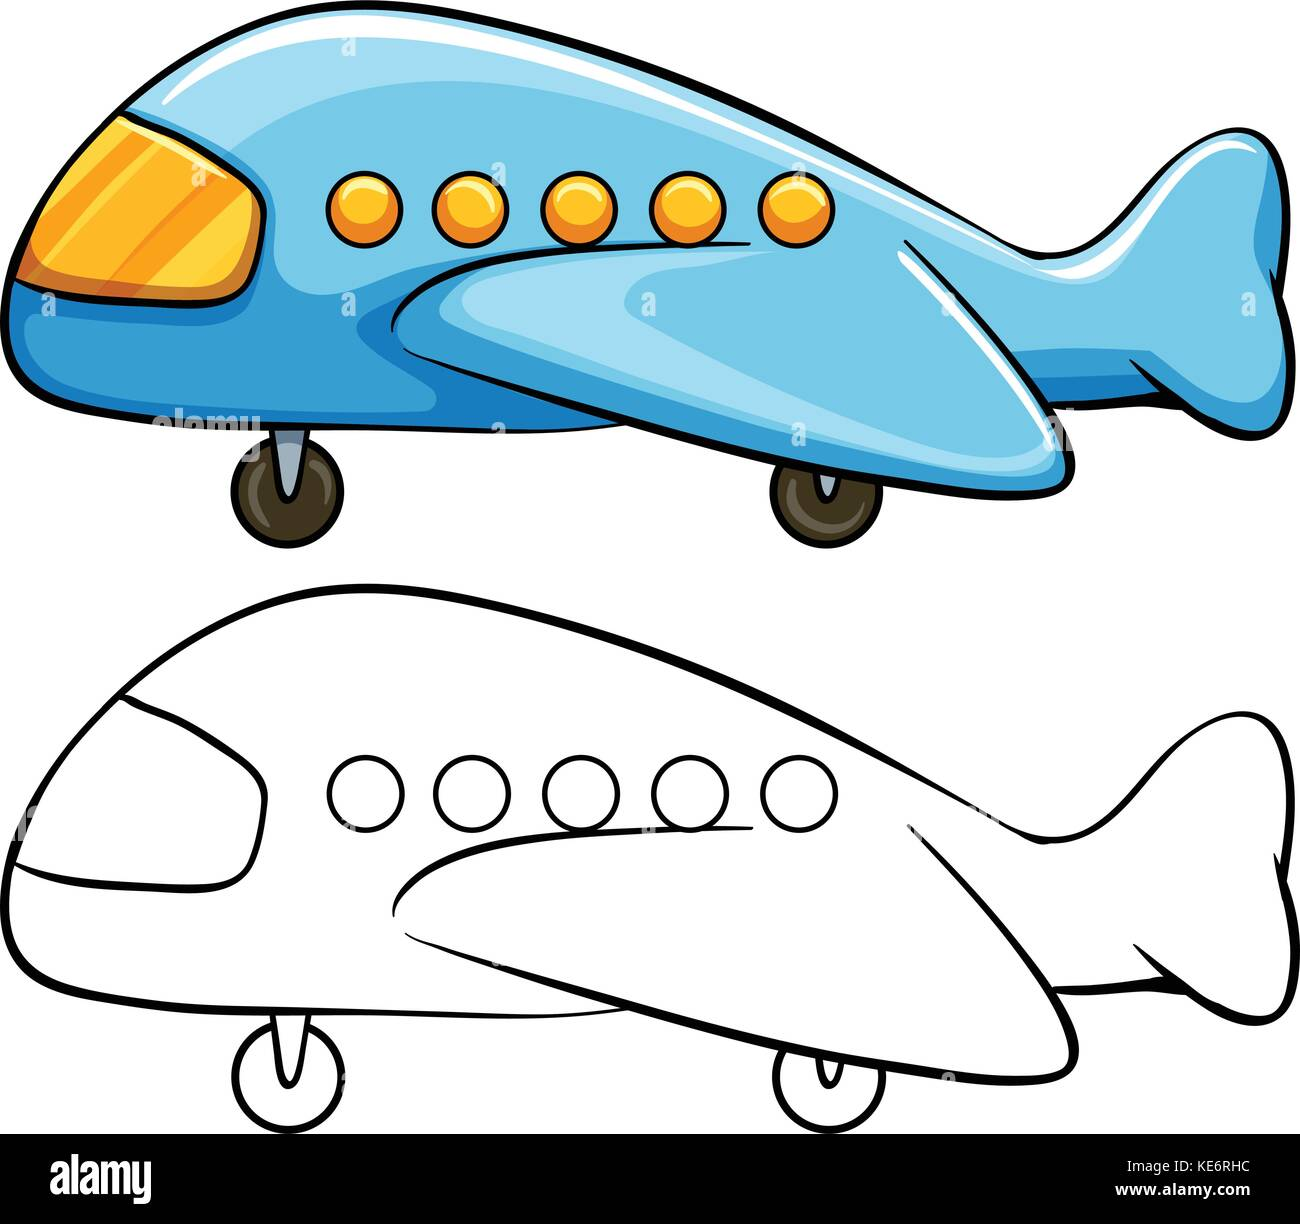 toy airplane with simple drawing